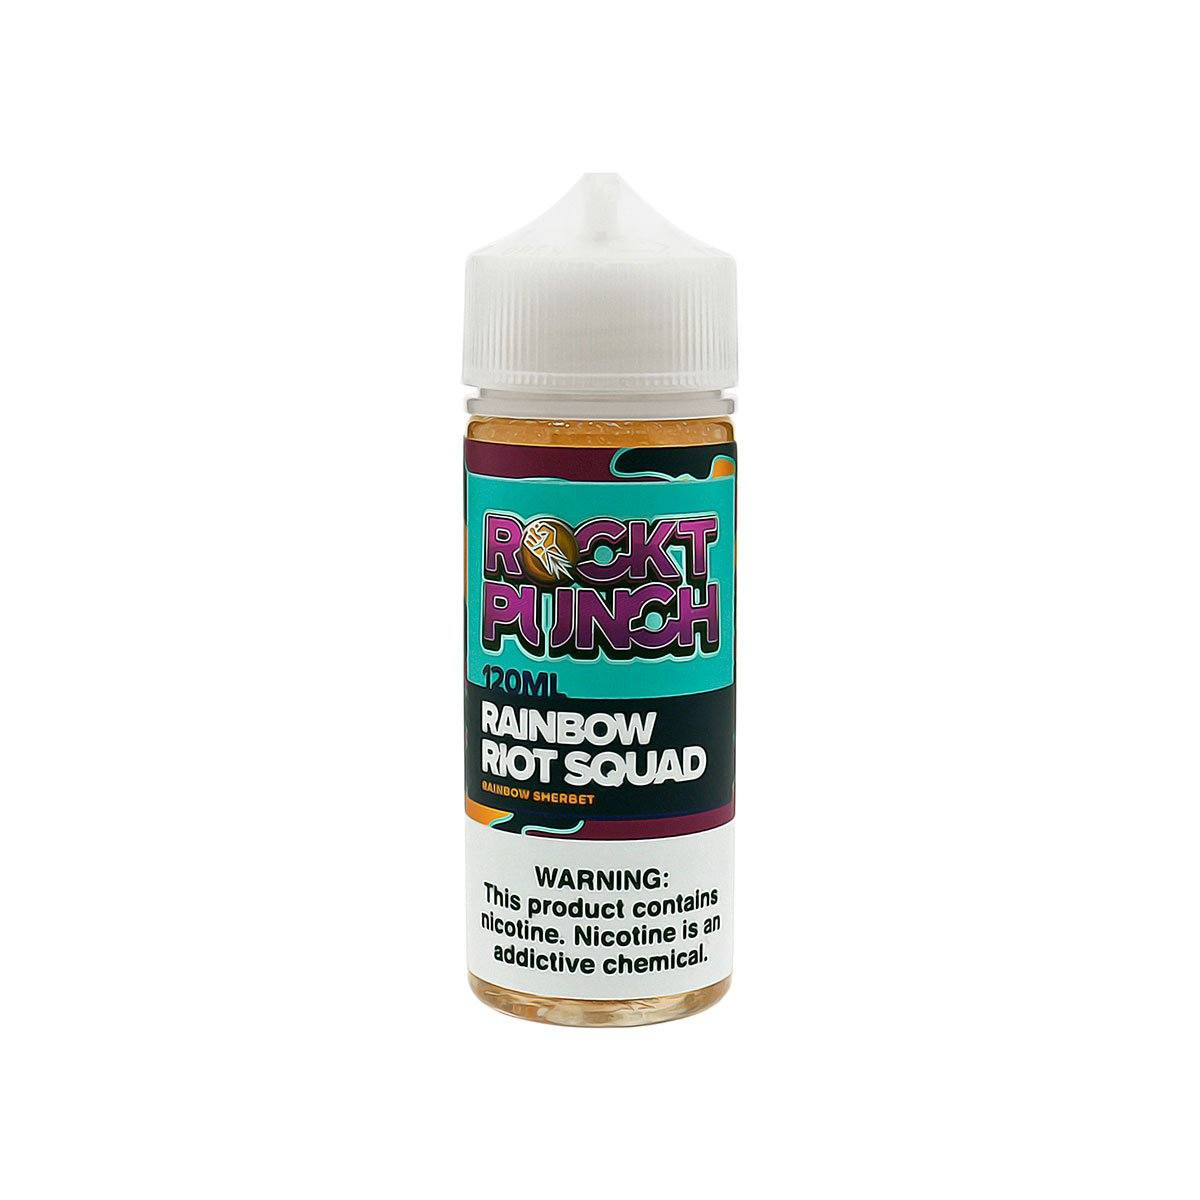 ROCKT PUNCH Rainbow Riot Squad E-Juice Bottle